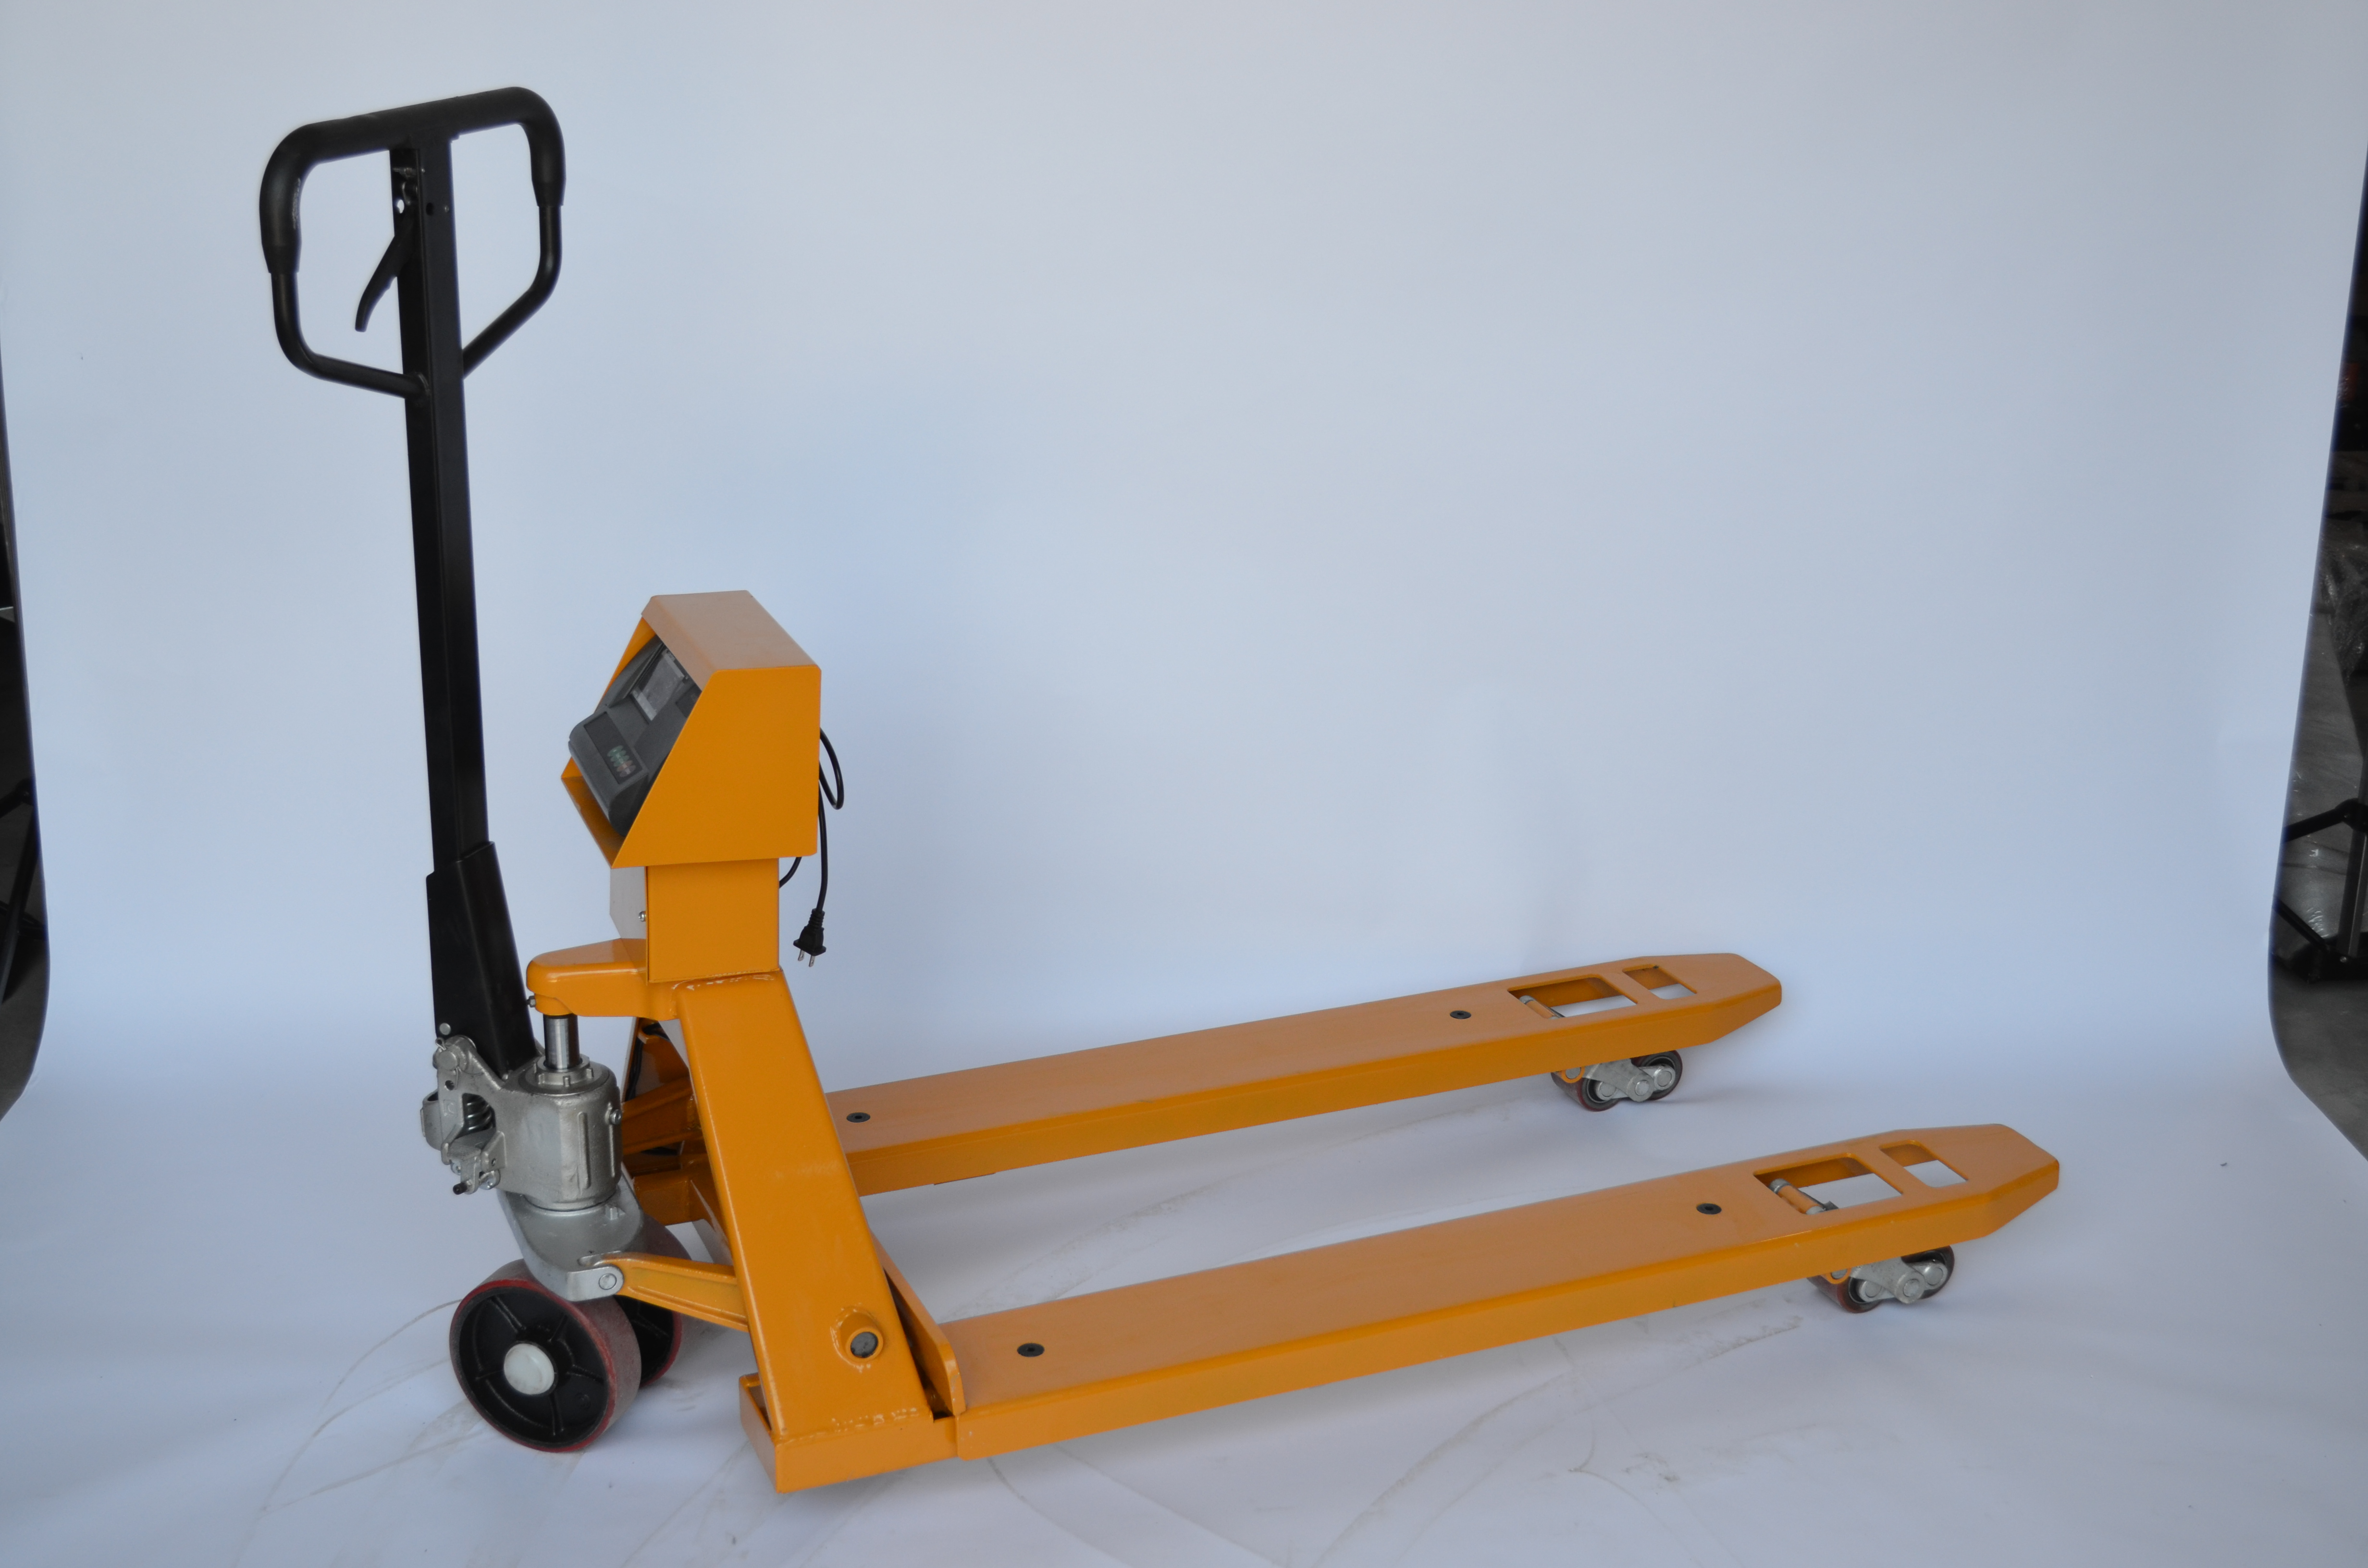 Scale Pallet Truck - 5,500 lbs. Capacity